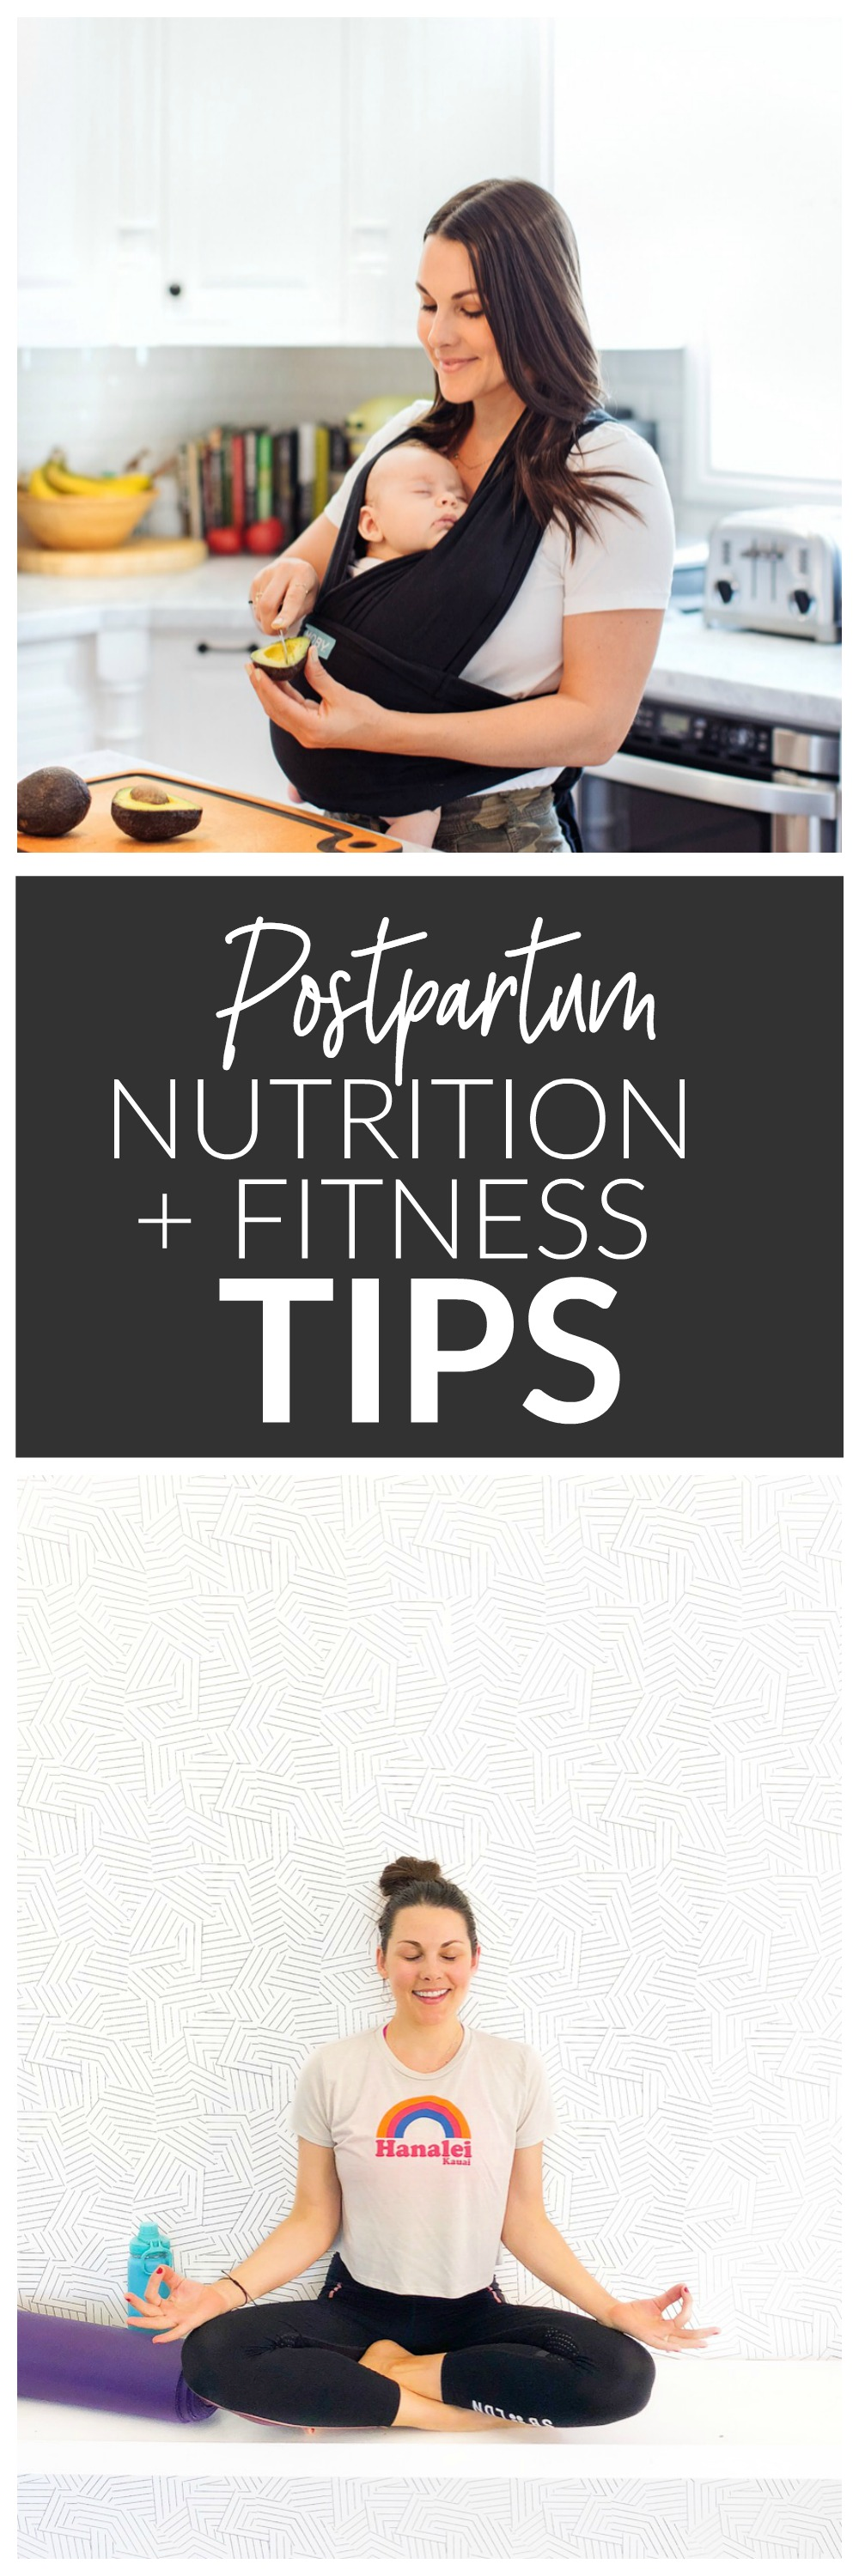 Postpartum Nutrition + Fitness Tips